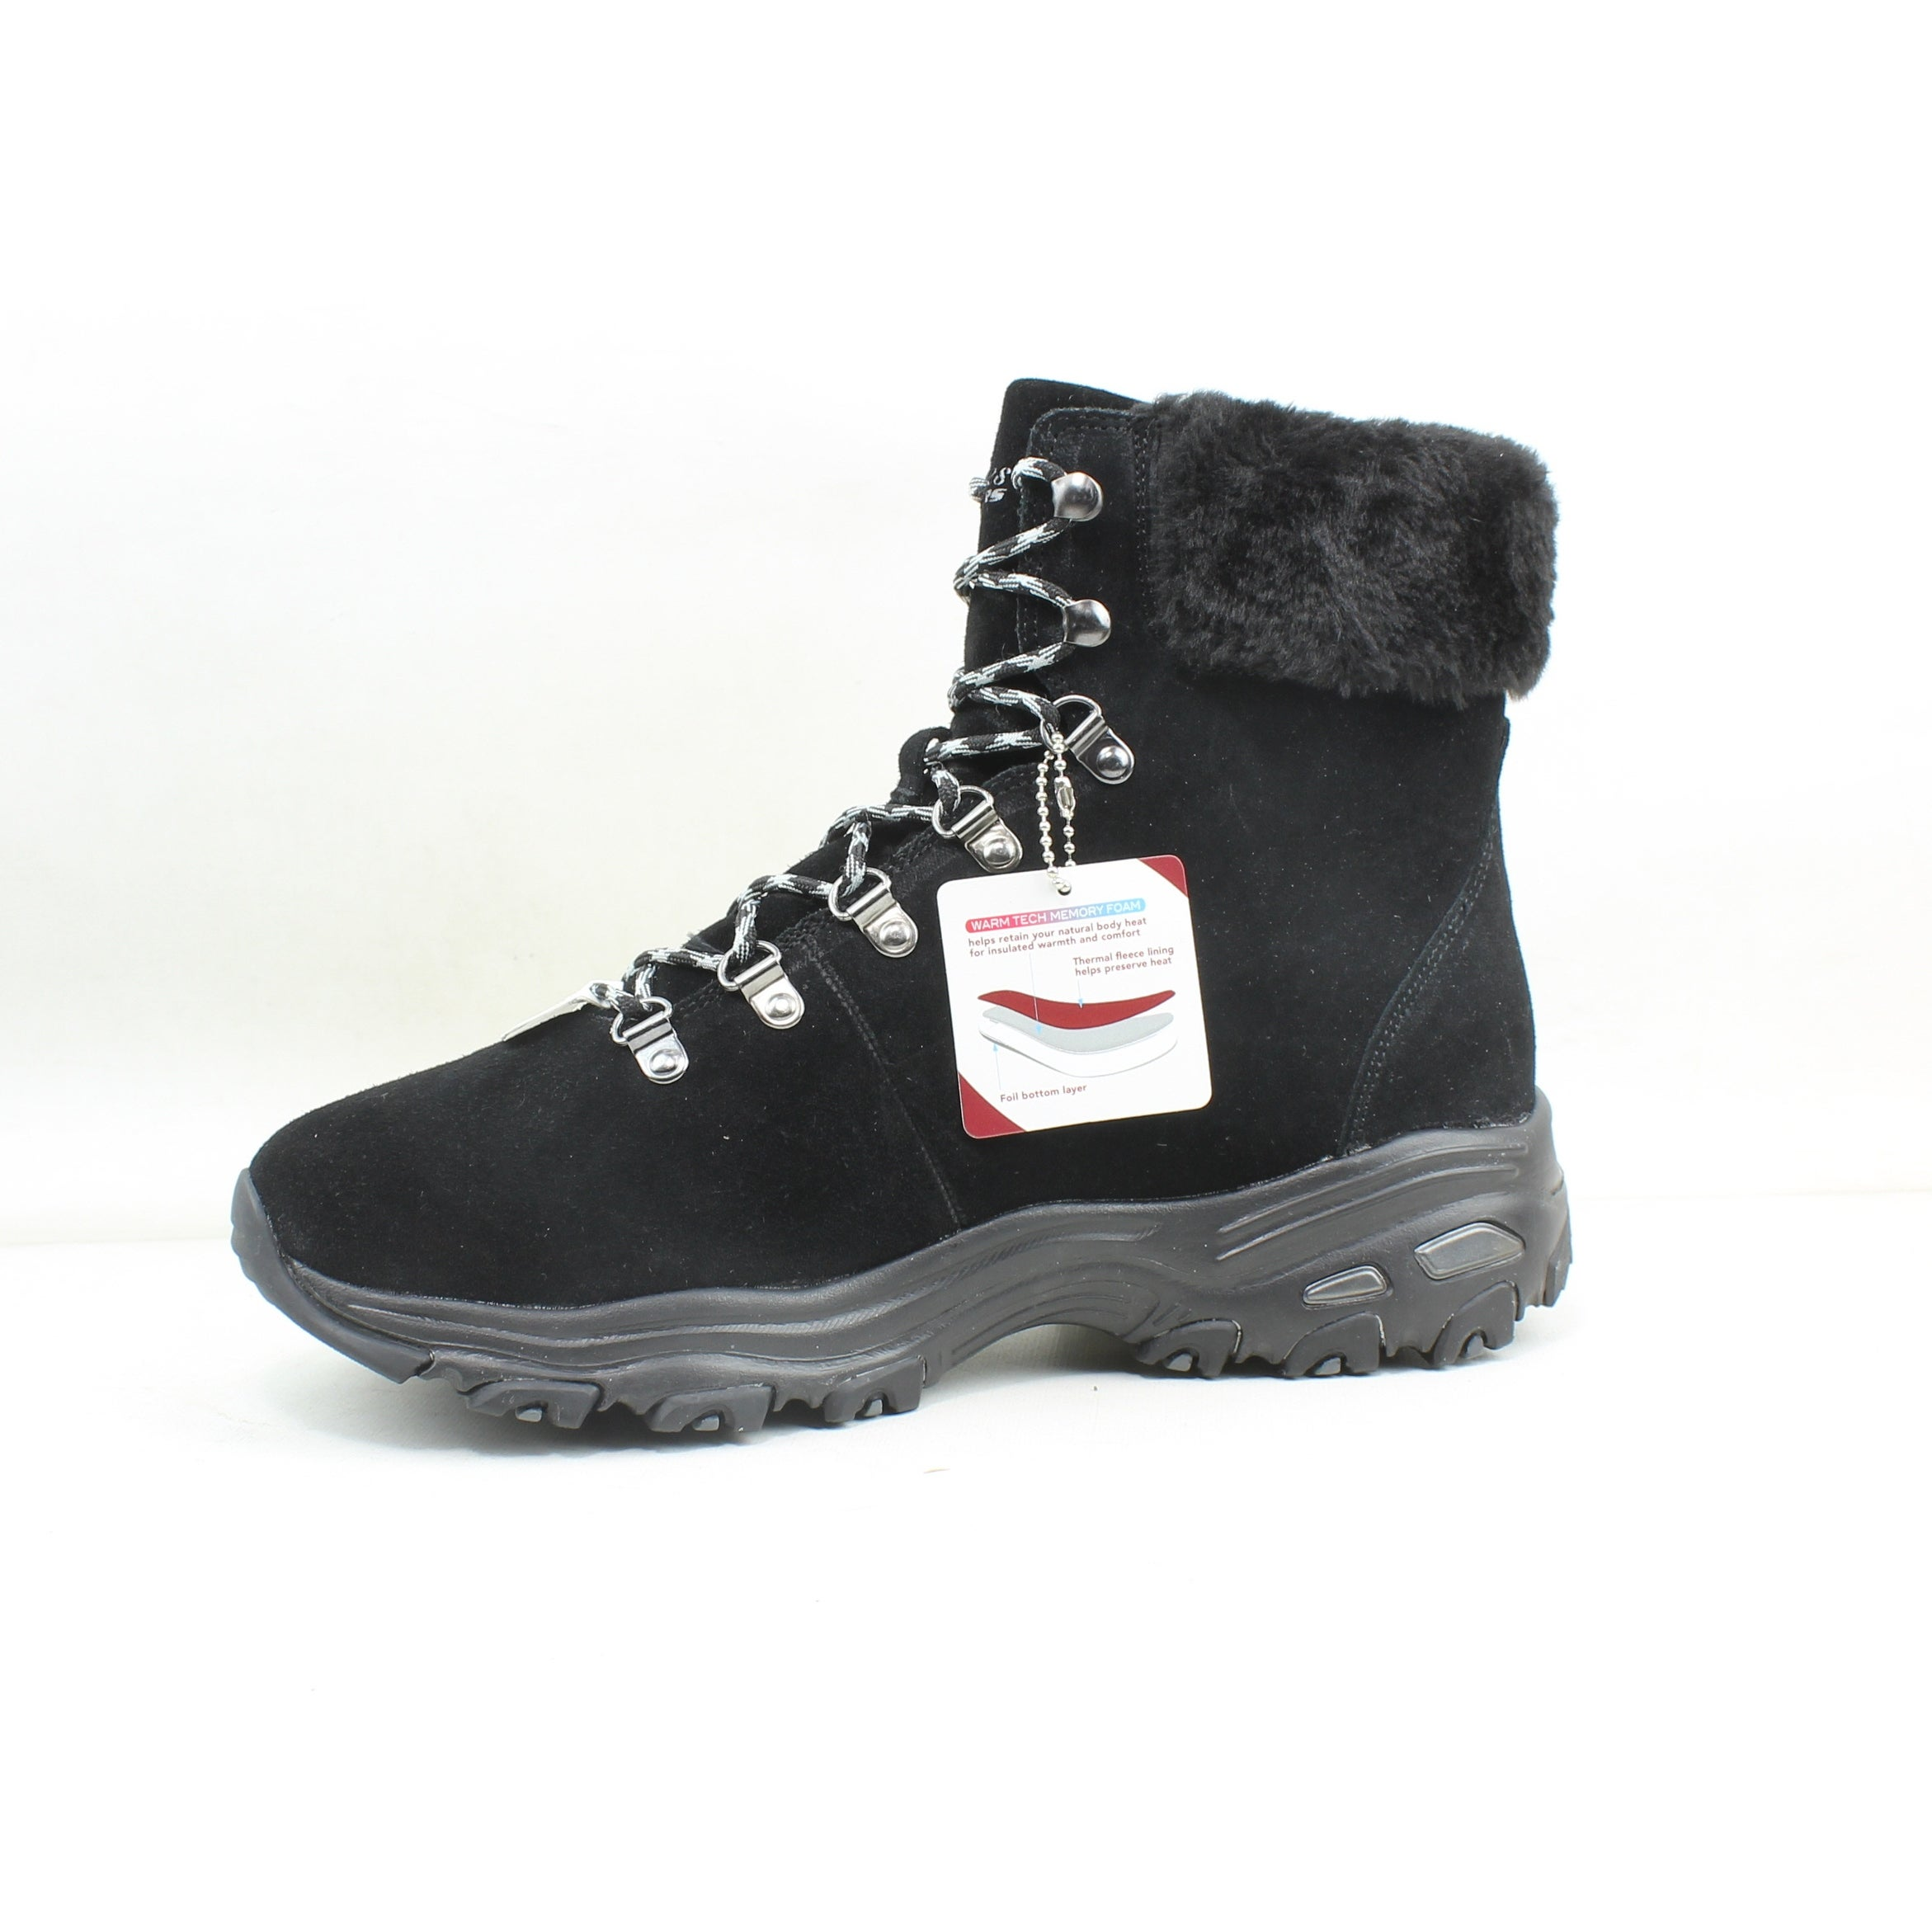 Skechers Womens D'lites Alps Black Snow Boots Size 10